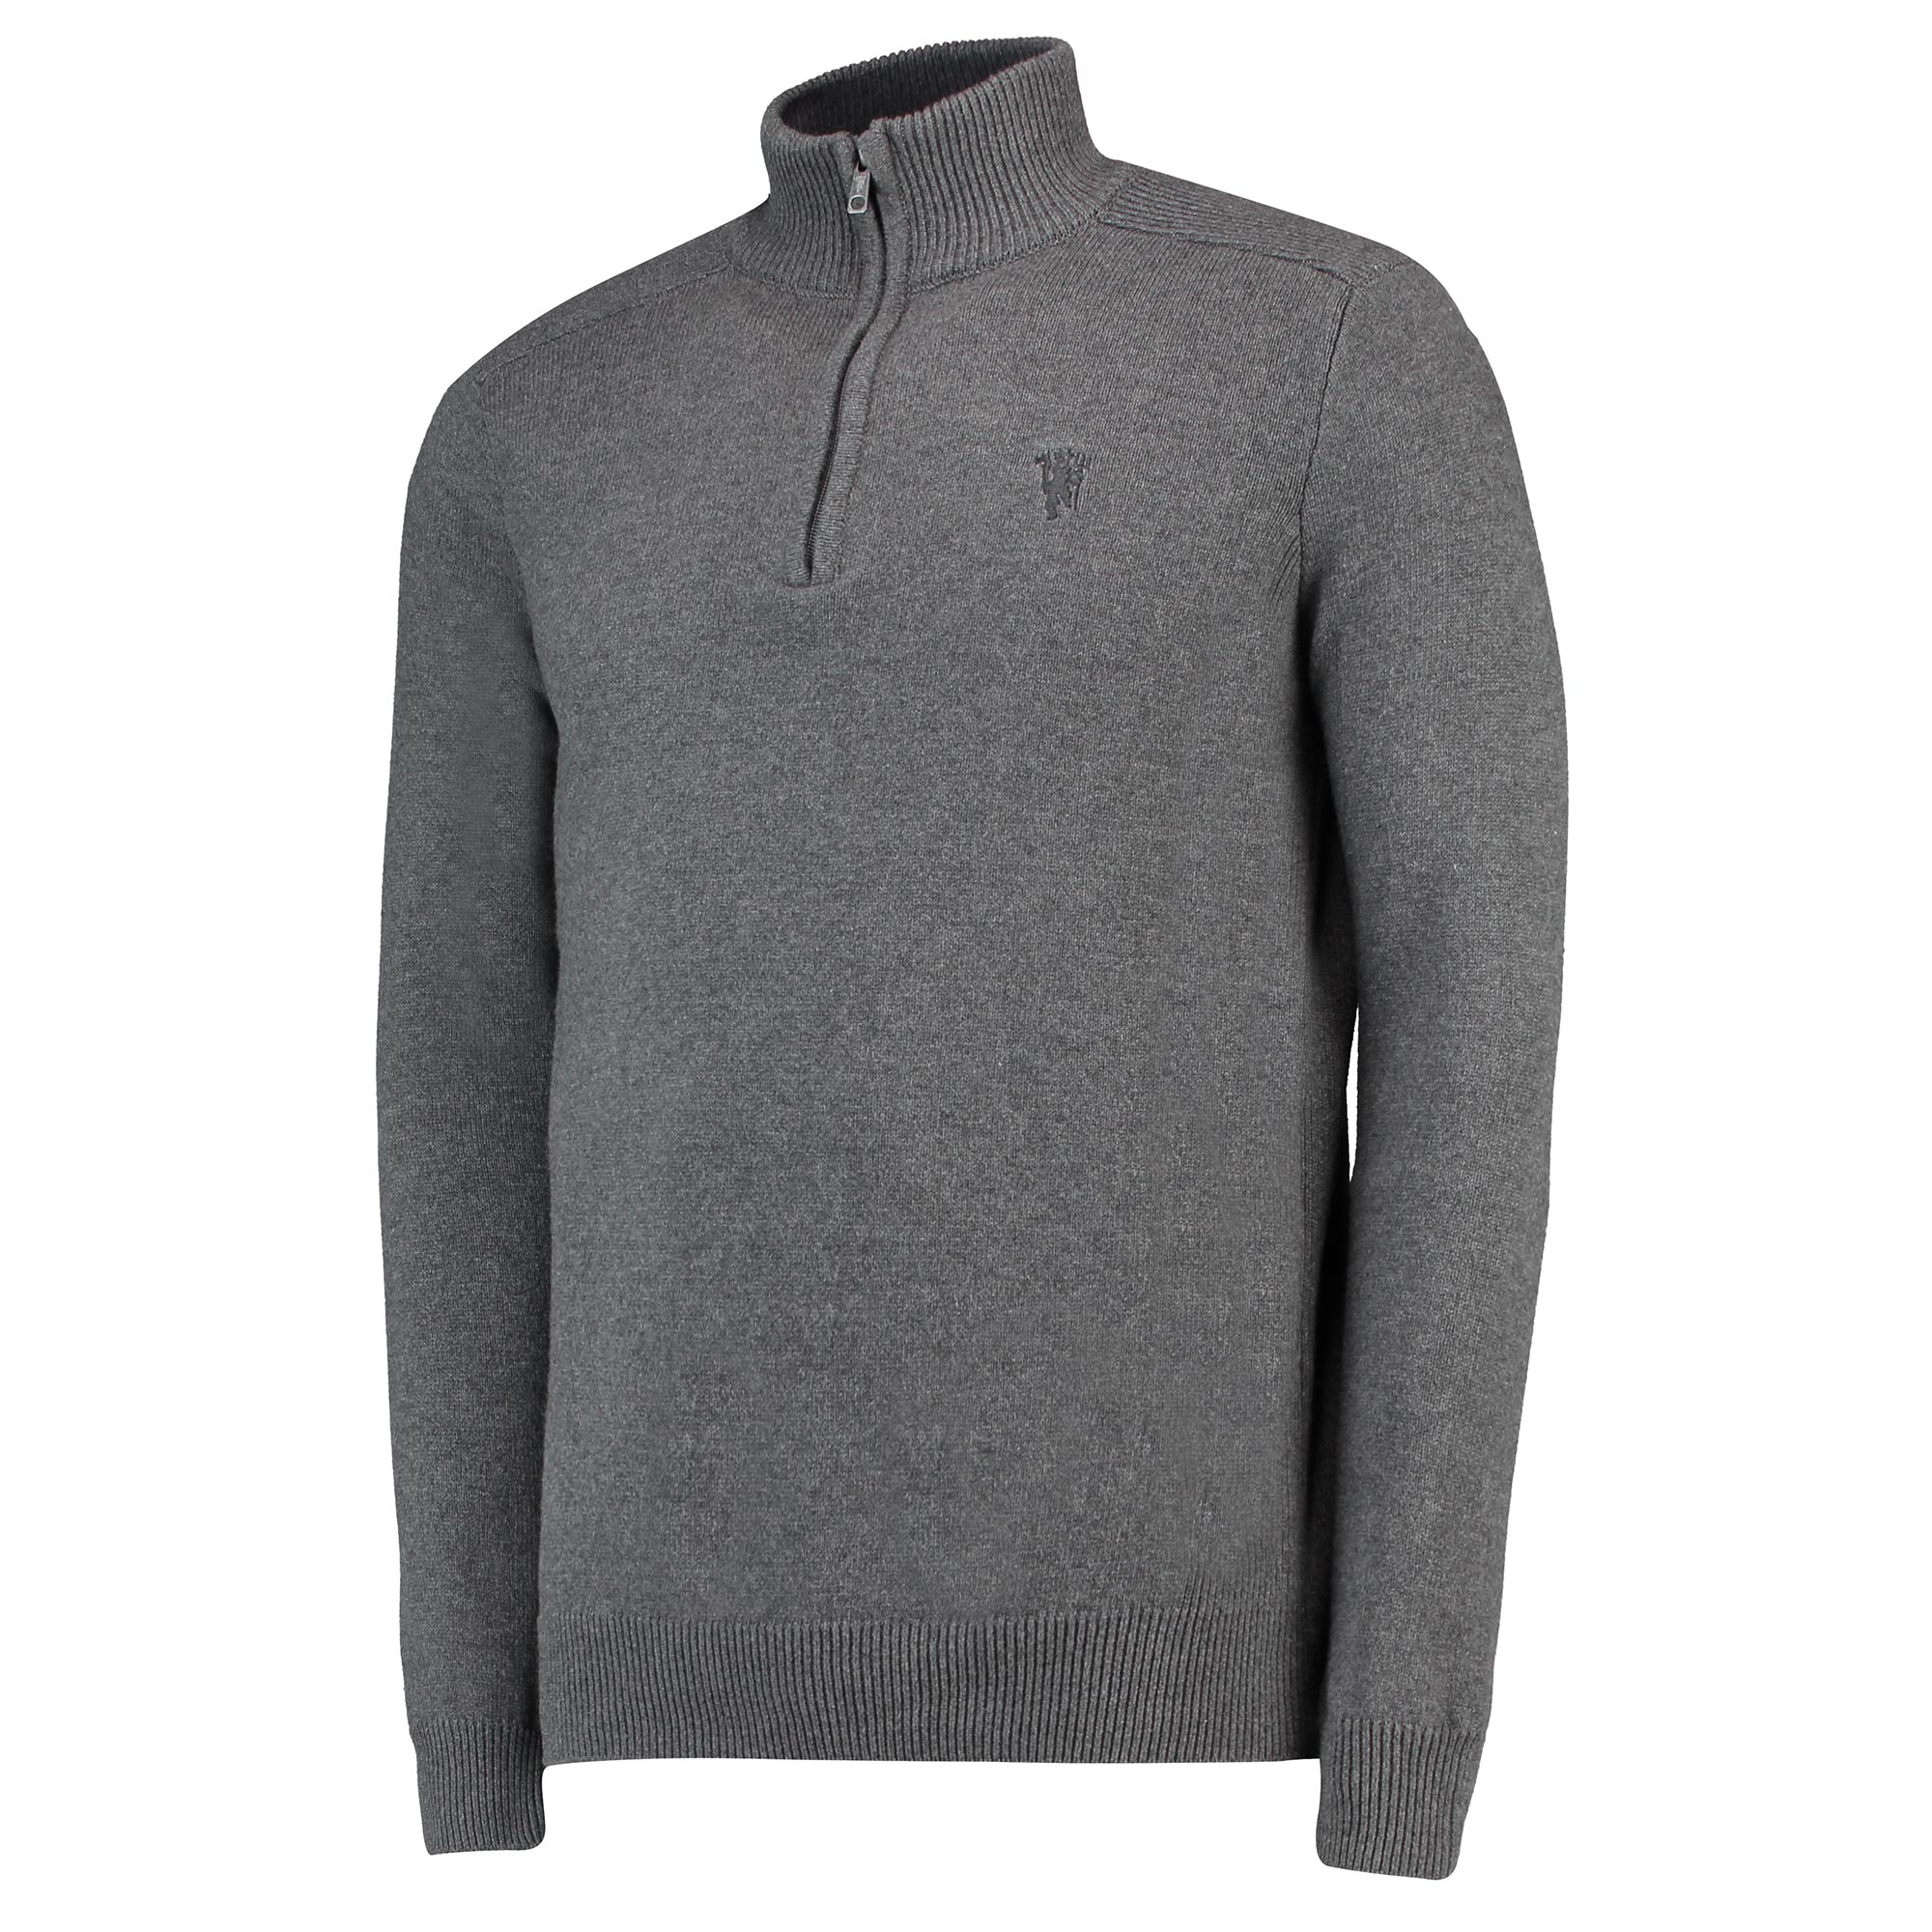 Image of Manchester United 1/4 Zip Sweater - Charcoal - Mens